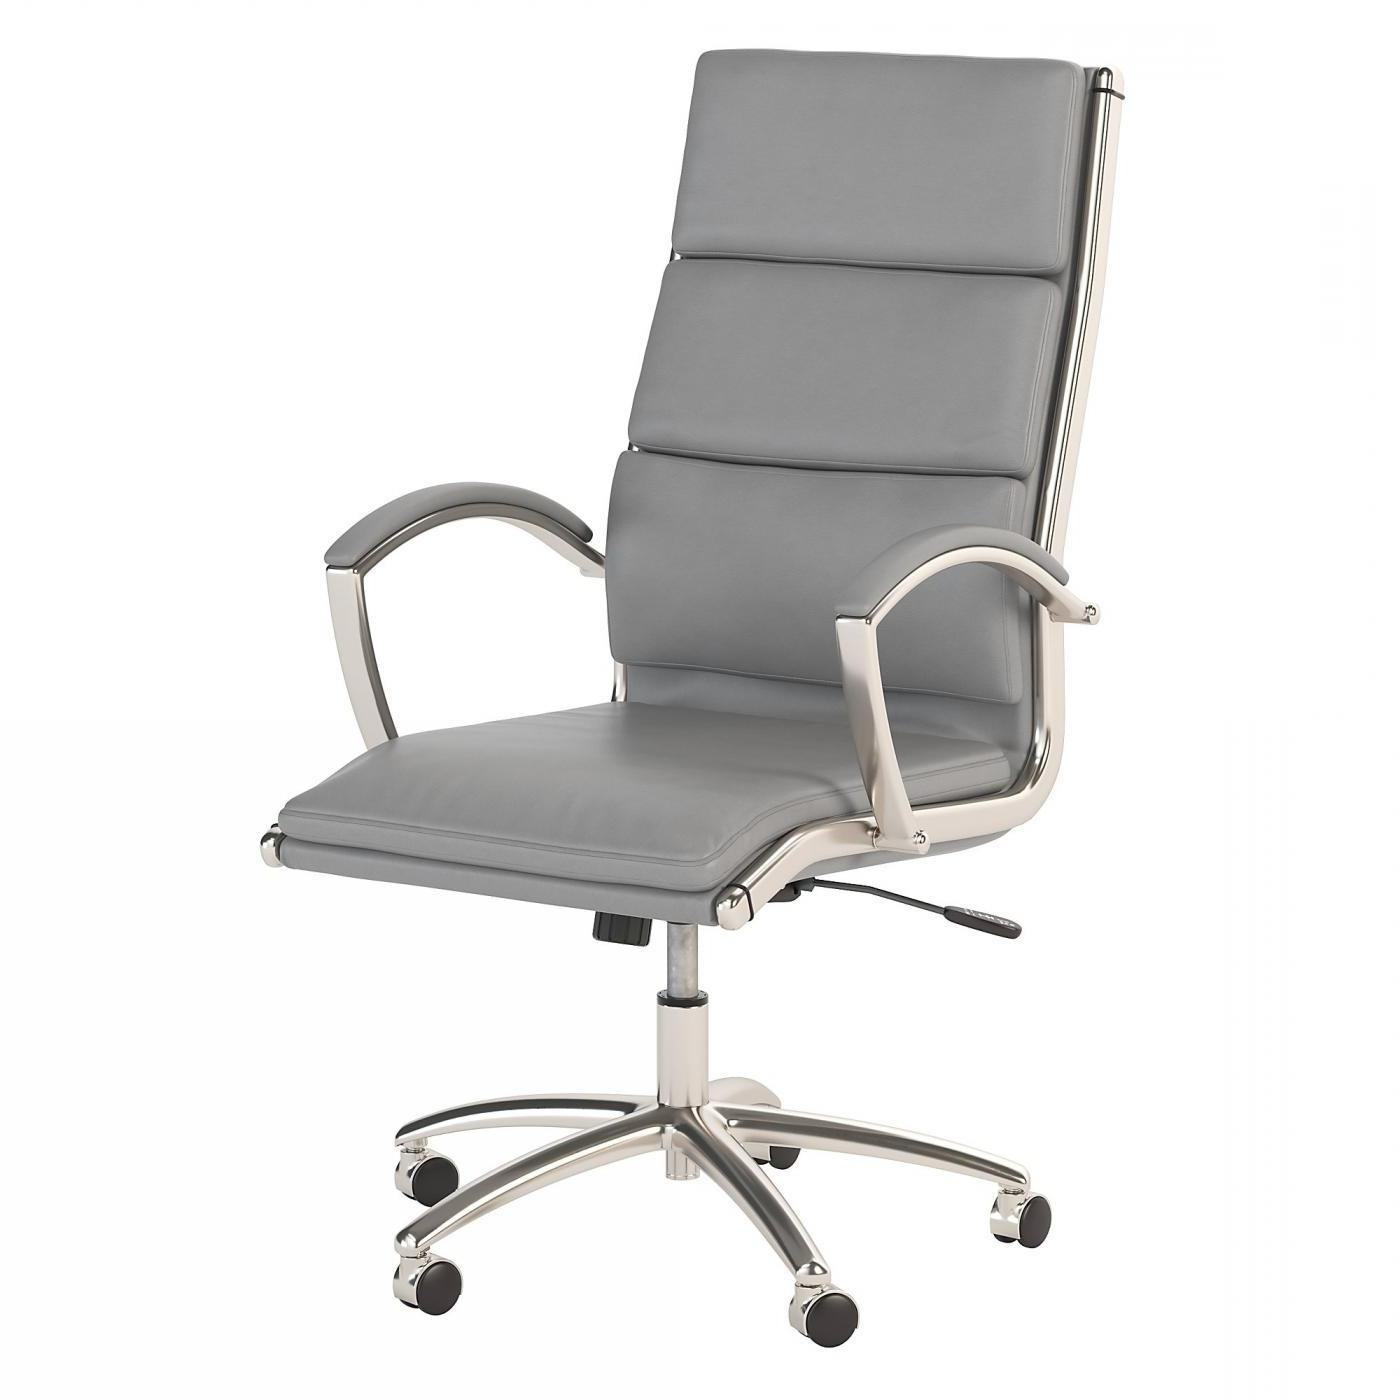 BUSH BUSINESS FURNITURE MODELO HIGH BACK LEATHER EXECUTIVE OFFICE CHAIR #EH-CH1701LGL-03. FREE SHIPPING: